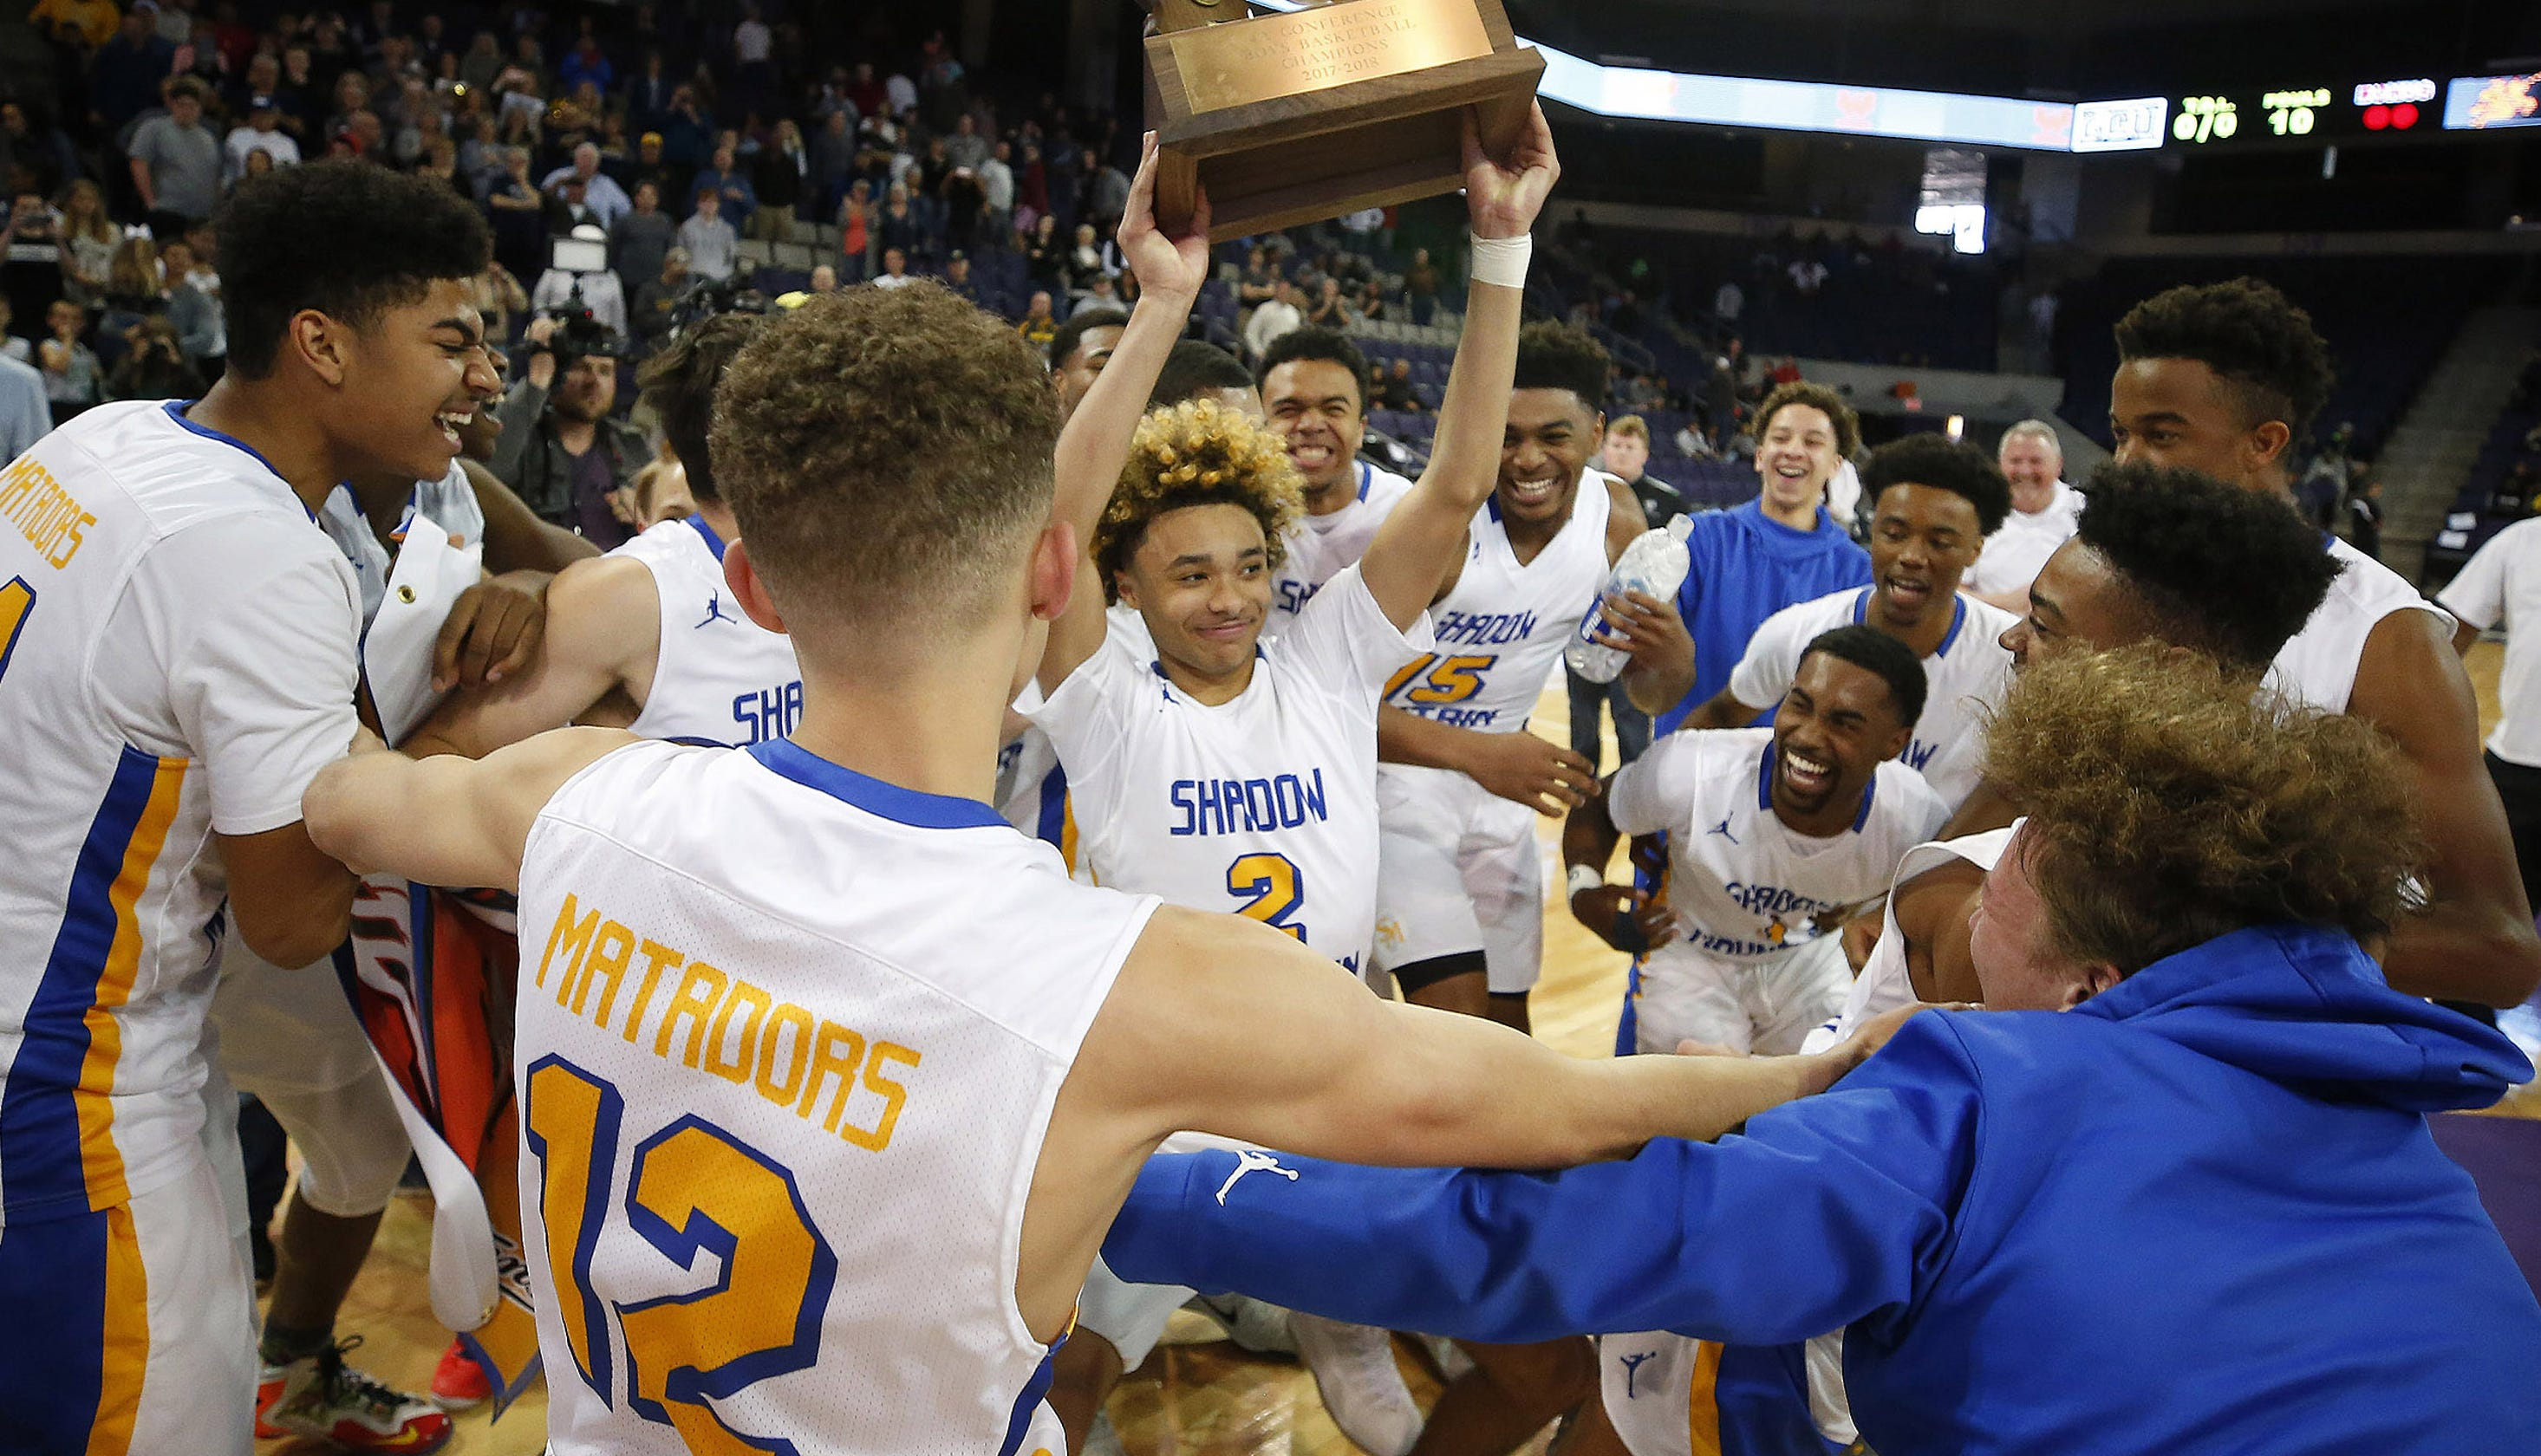 arizona high school sports 2018 in review top moments athletes